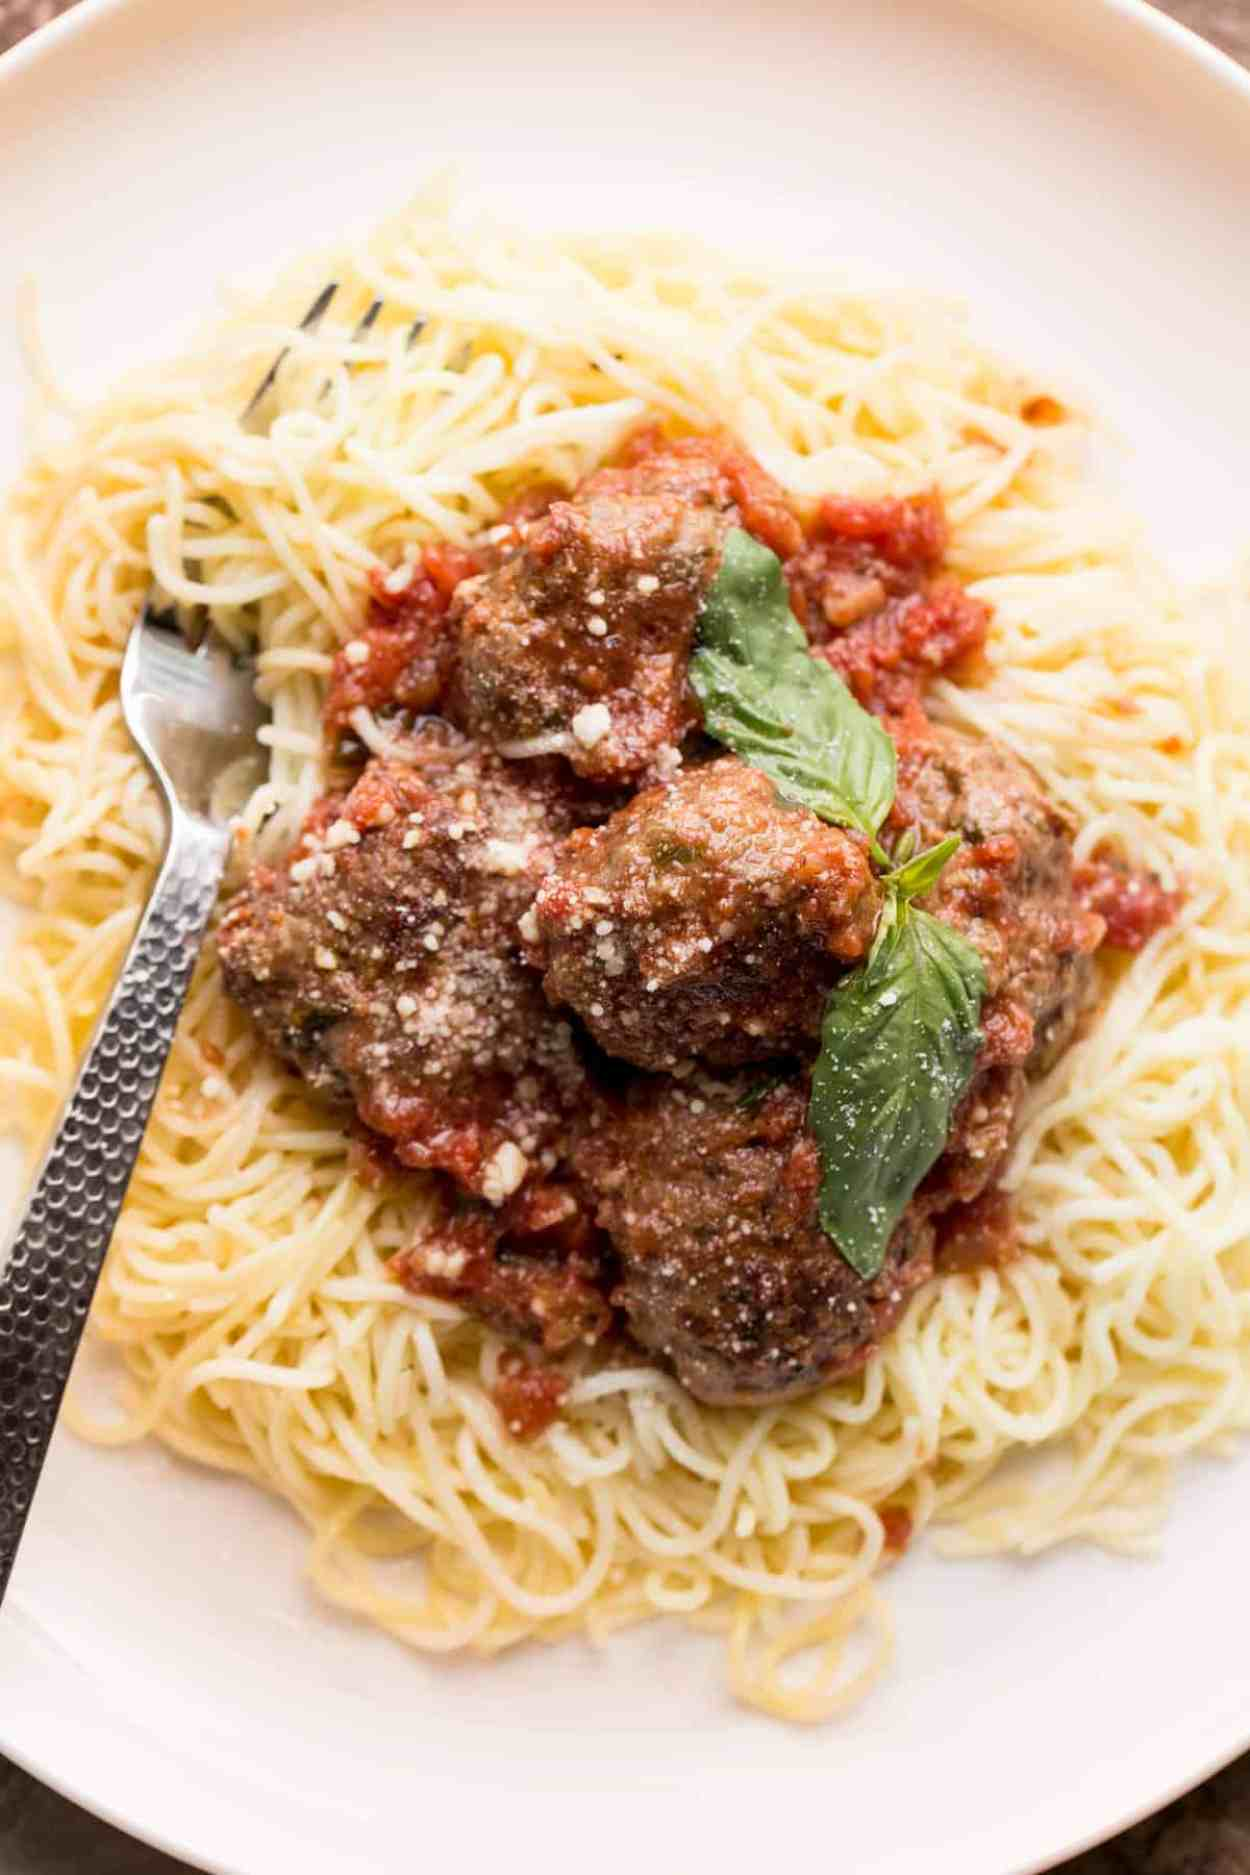 Easy meatball recipe topped with a homemade meatball sauce. Served with pasta on a plate.